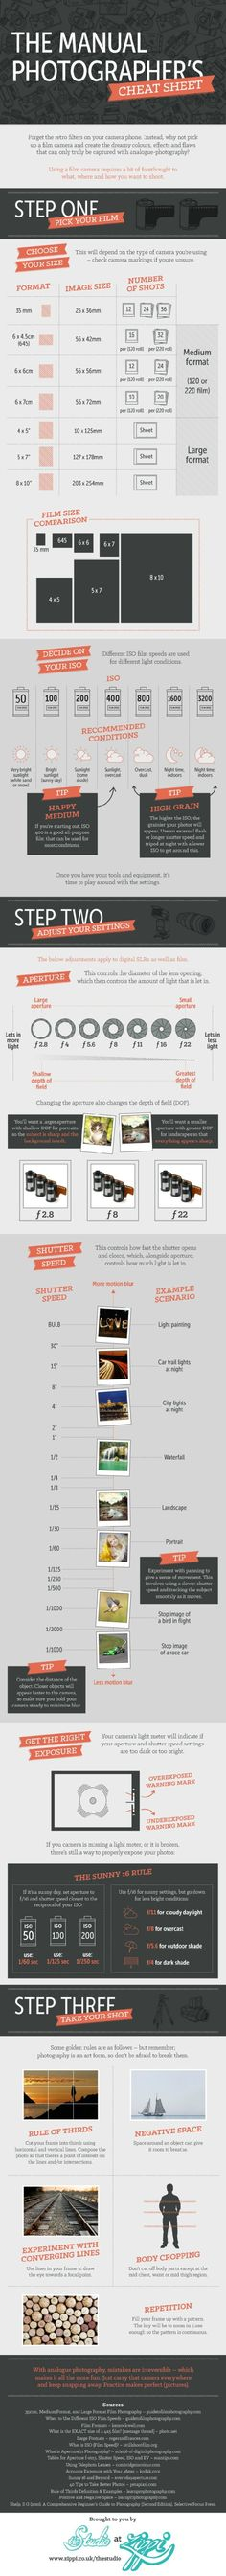 The Manual Photographer's Cheat Sheet: An Infographic for Beginners